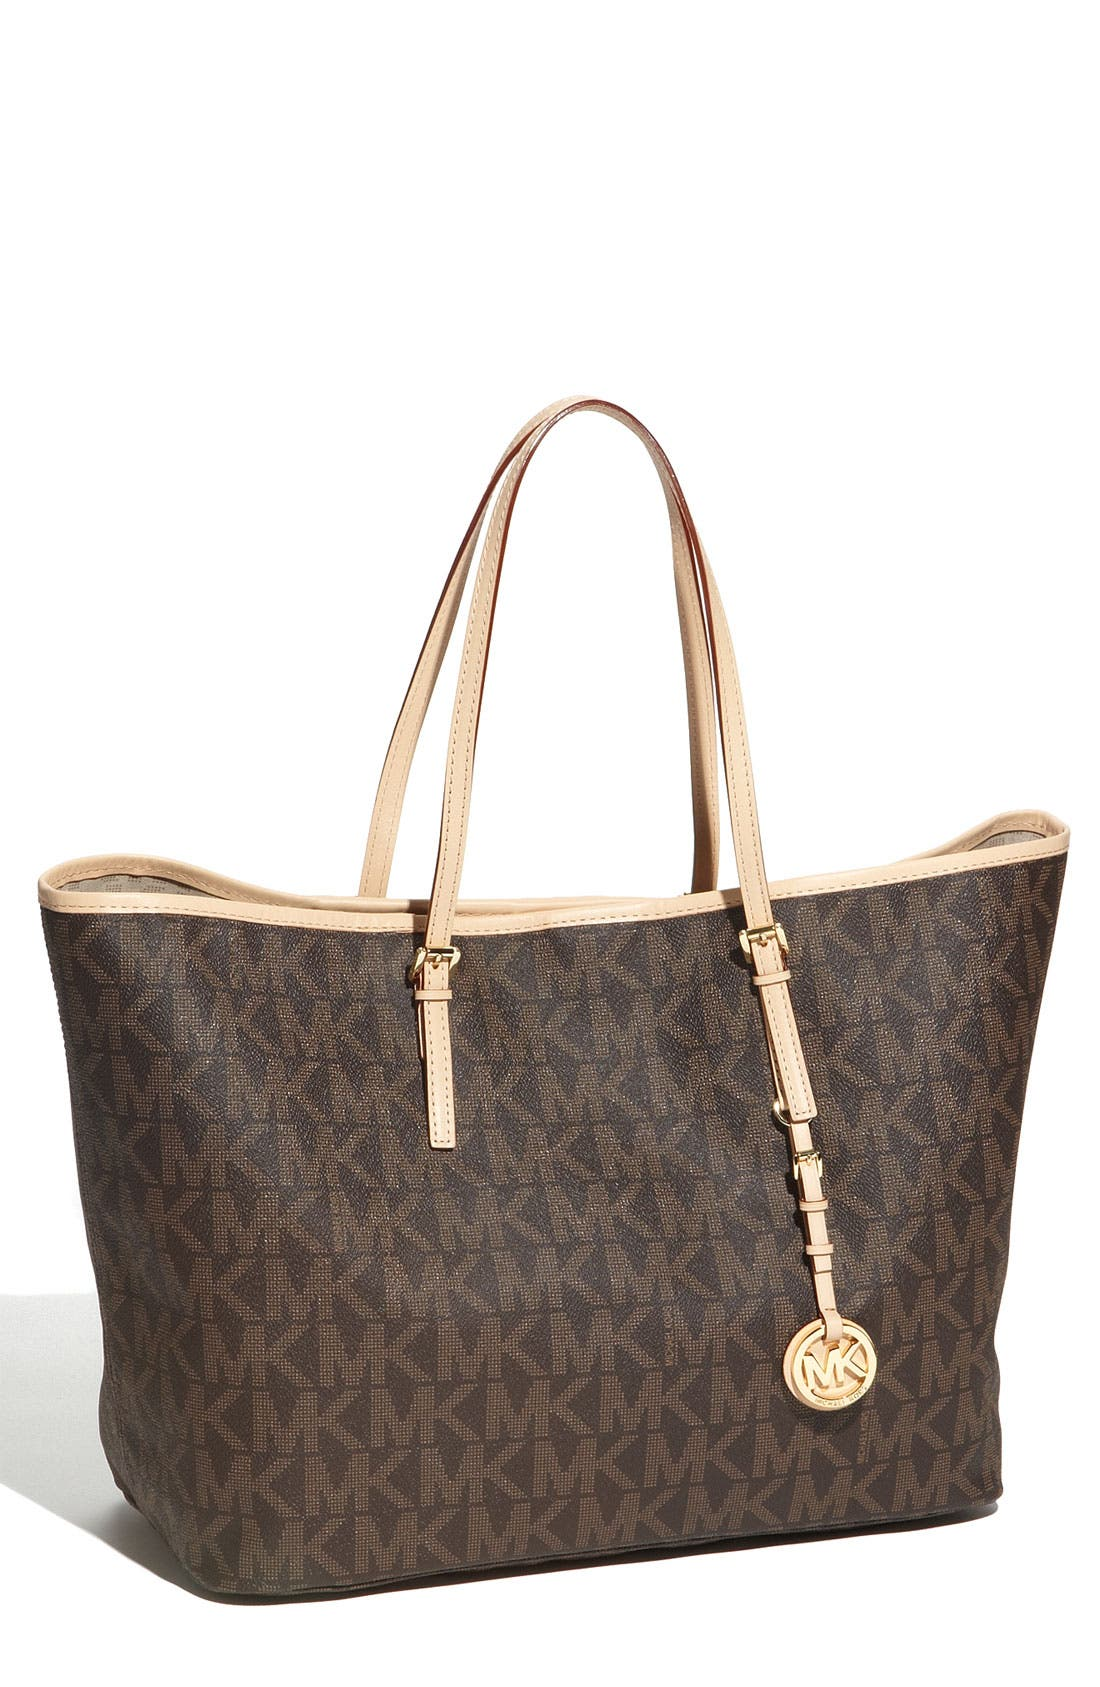 Alternate Image 1 Selected - MICHAEL Michael Kors 'Jet Set - Medium' Travel Tote